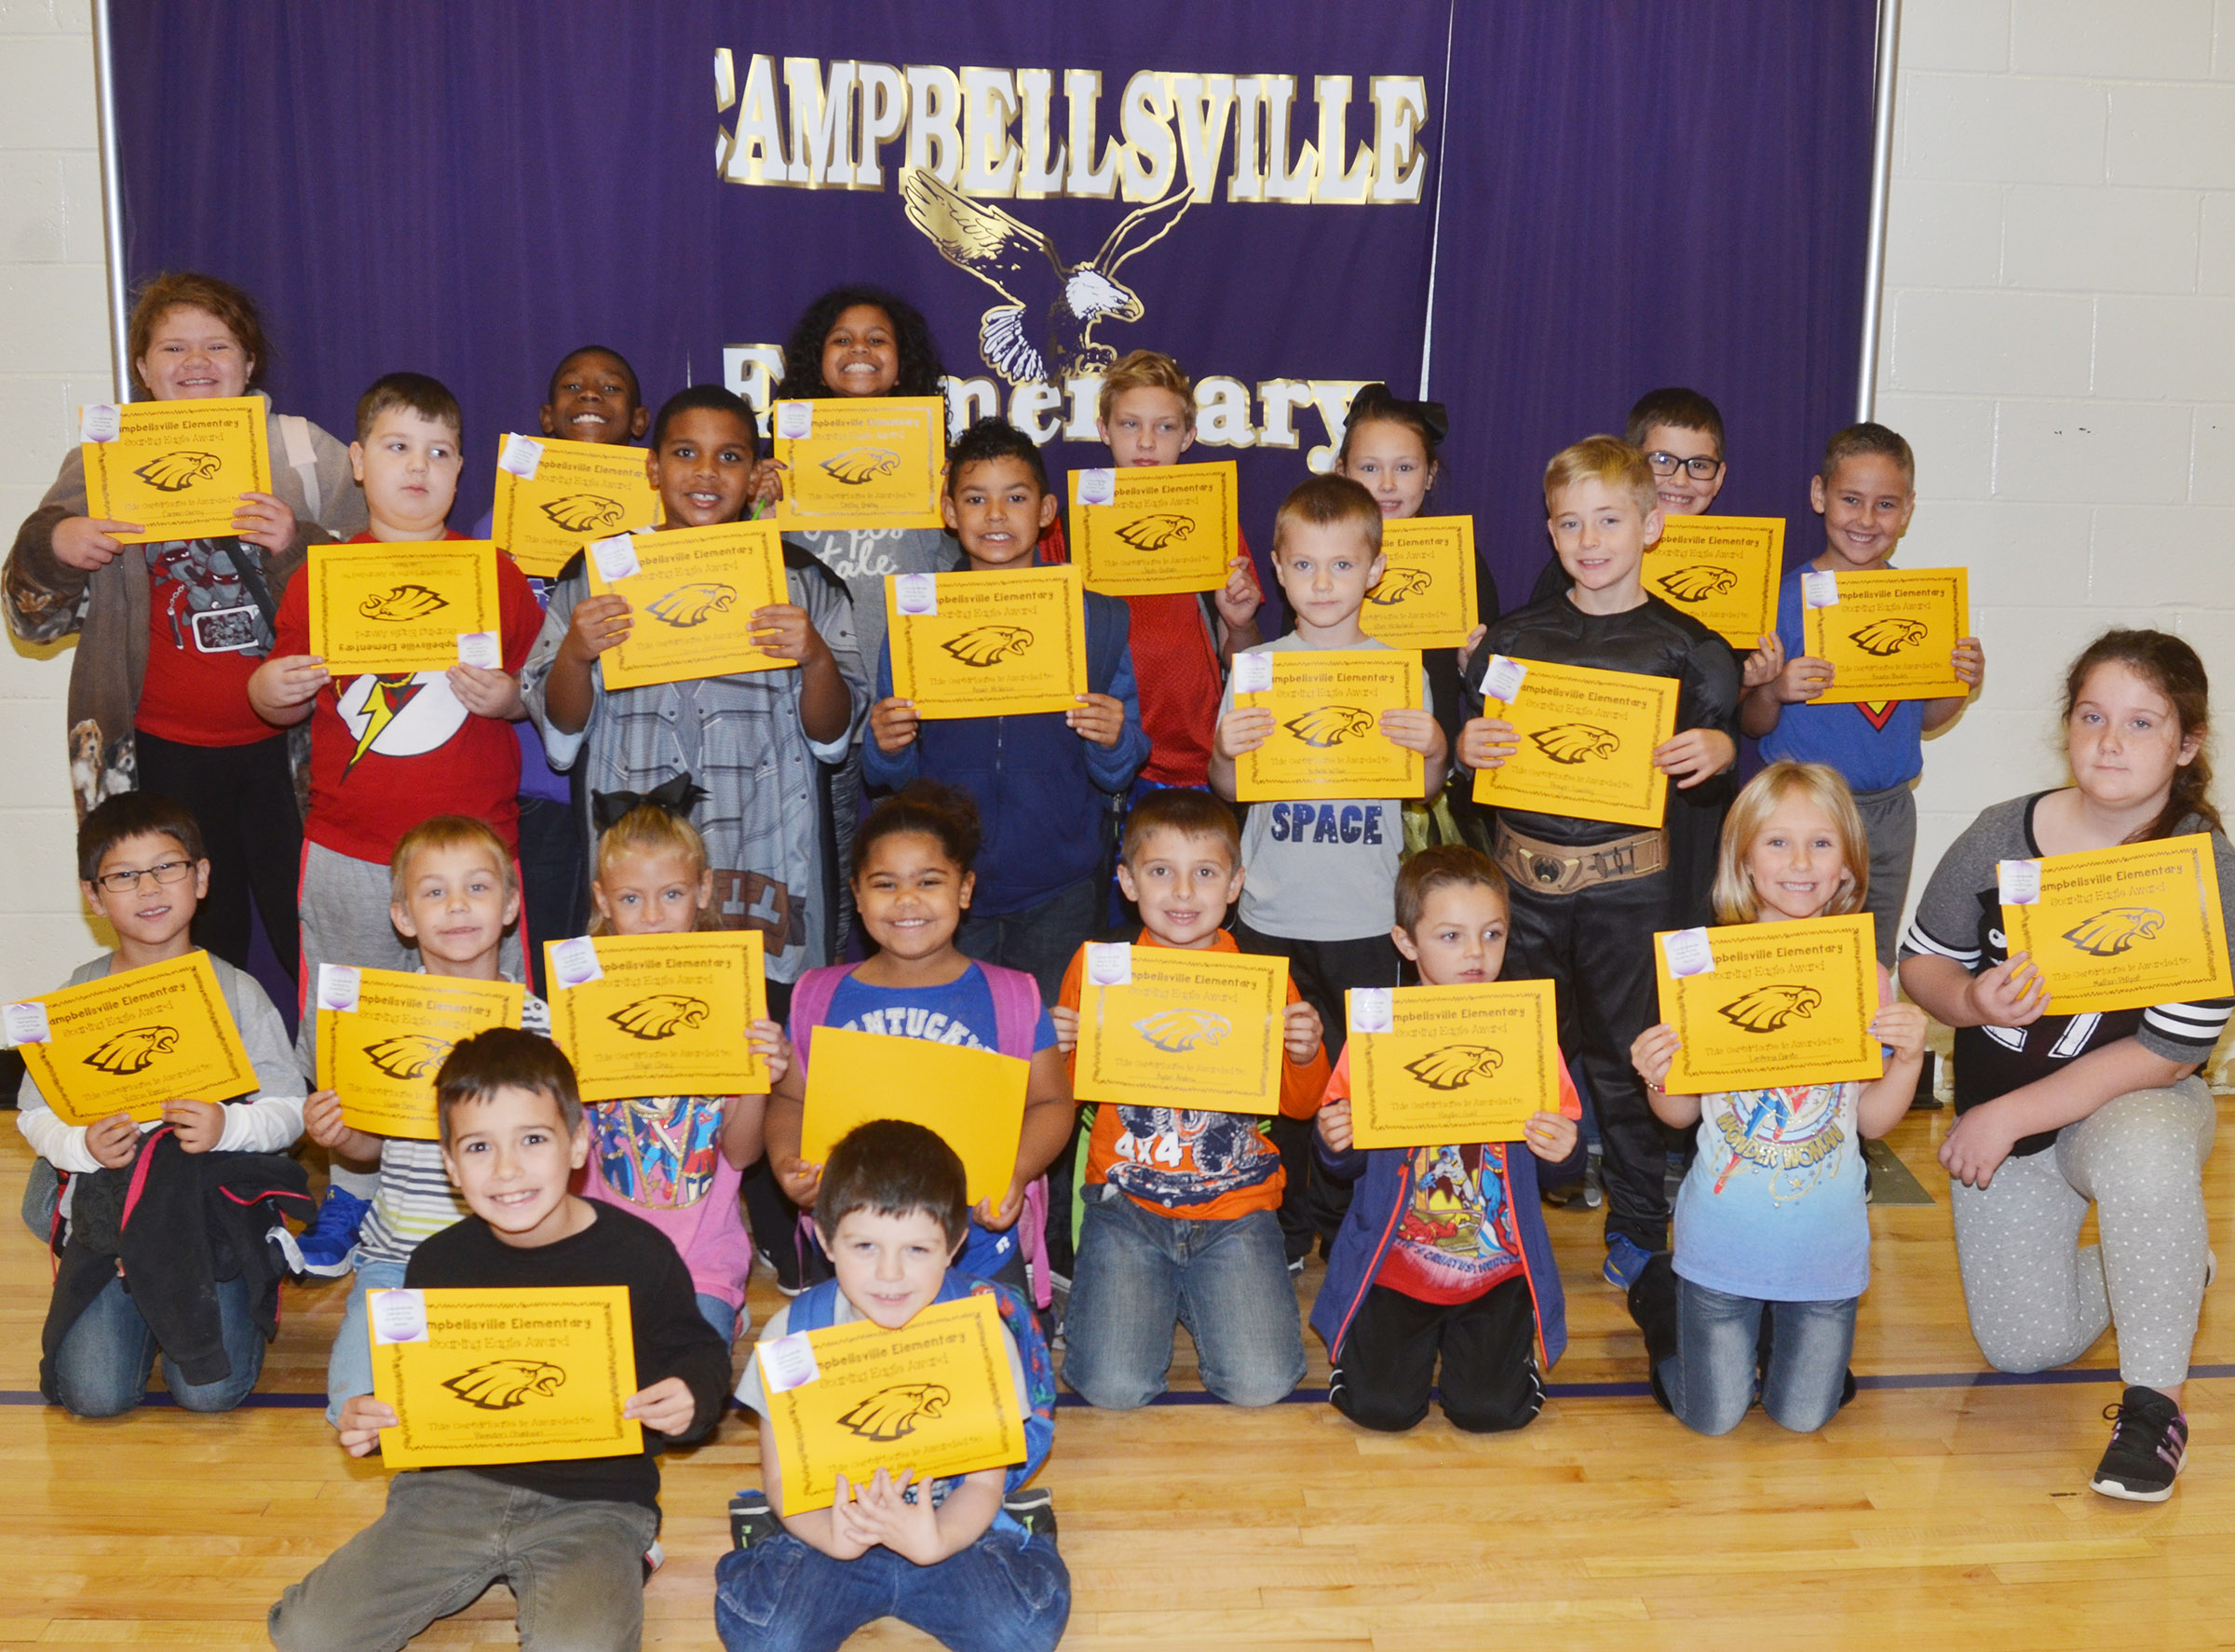 From left, front, are second-grader Brenden Chastain and kindergartener Michael Priddy. Second row, kindergartener Victrin Ramsey, second-grader Hunter Bates, first-grader Aliyah Litsey, kindergartener Linnly Adams, first-grader Ayden Andrew, kindergartener Hayden Goff, first-grader LeeAnna Garvin and fourth-grader Madison Philpott. Third row, second-grader Luke Mardis, third-grader Zaemar Hoskins, second-grader Rizzo McKenzie, kindergartener Nicholas Wilson and fourth-grader Braydn Spurling. Back, fifth-grader Carmen Gurley, third-grader Jaron Johnson, fifth-graders Destiny Bradley and Jacob Graham, third-graders River McFarland and Tye Rhodes and first-grader Braxton Rhodes.